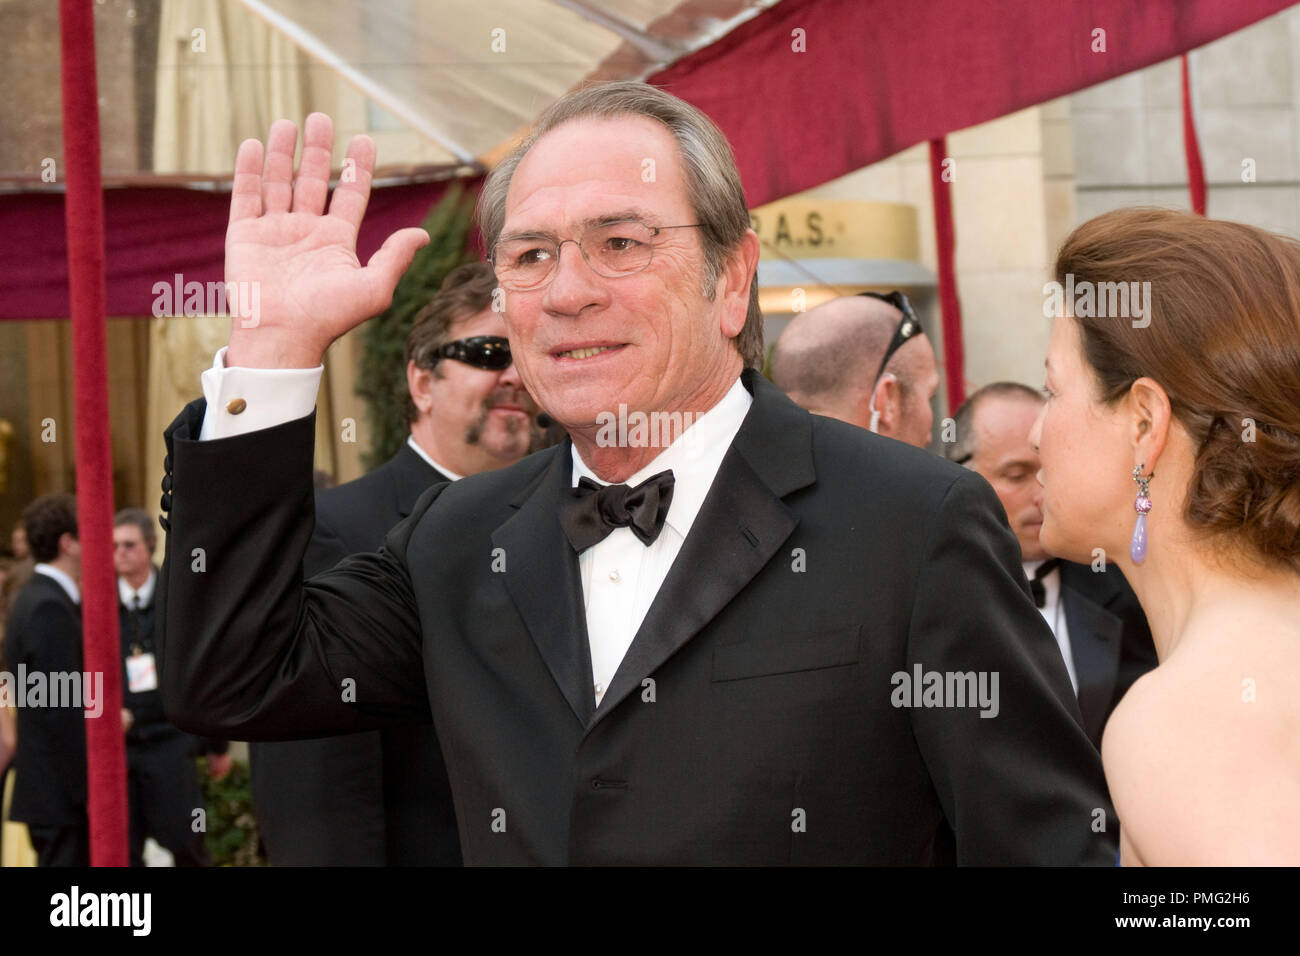 The Academy of Motion Picture Arts and Sciences Presents 'Academy Awards - 80th Annual' Tommy Lee Jones 2-24-08    File Reference # 30000_032  For Editorial Use Only -  All Rights Reserved - Stock Image